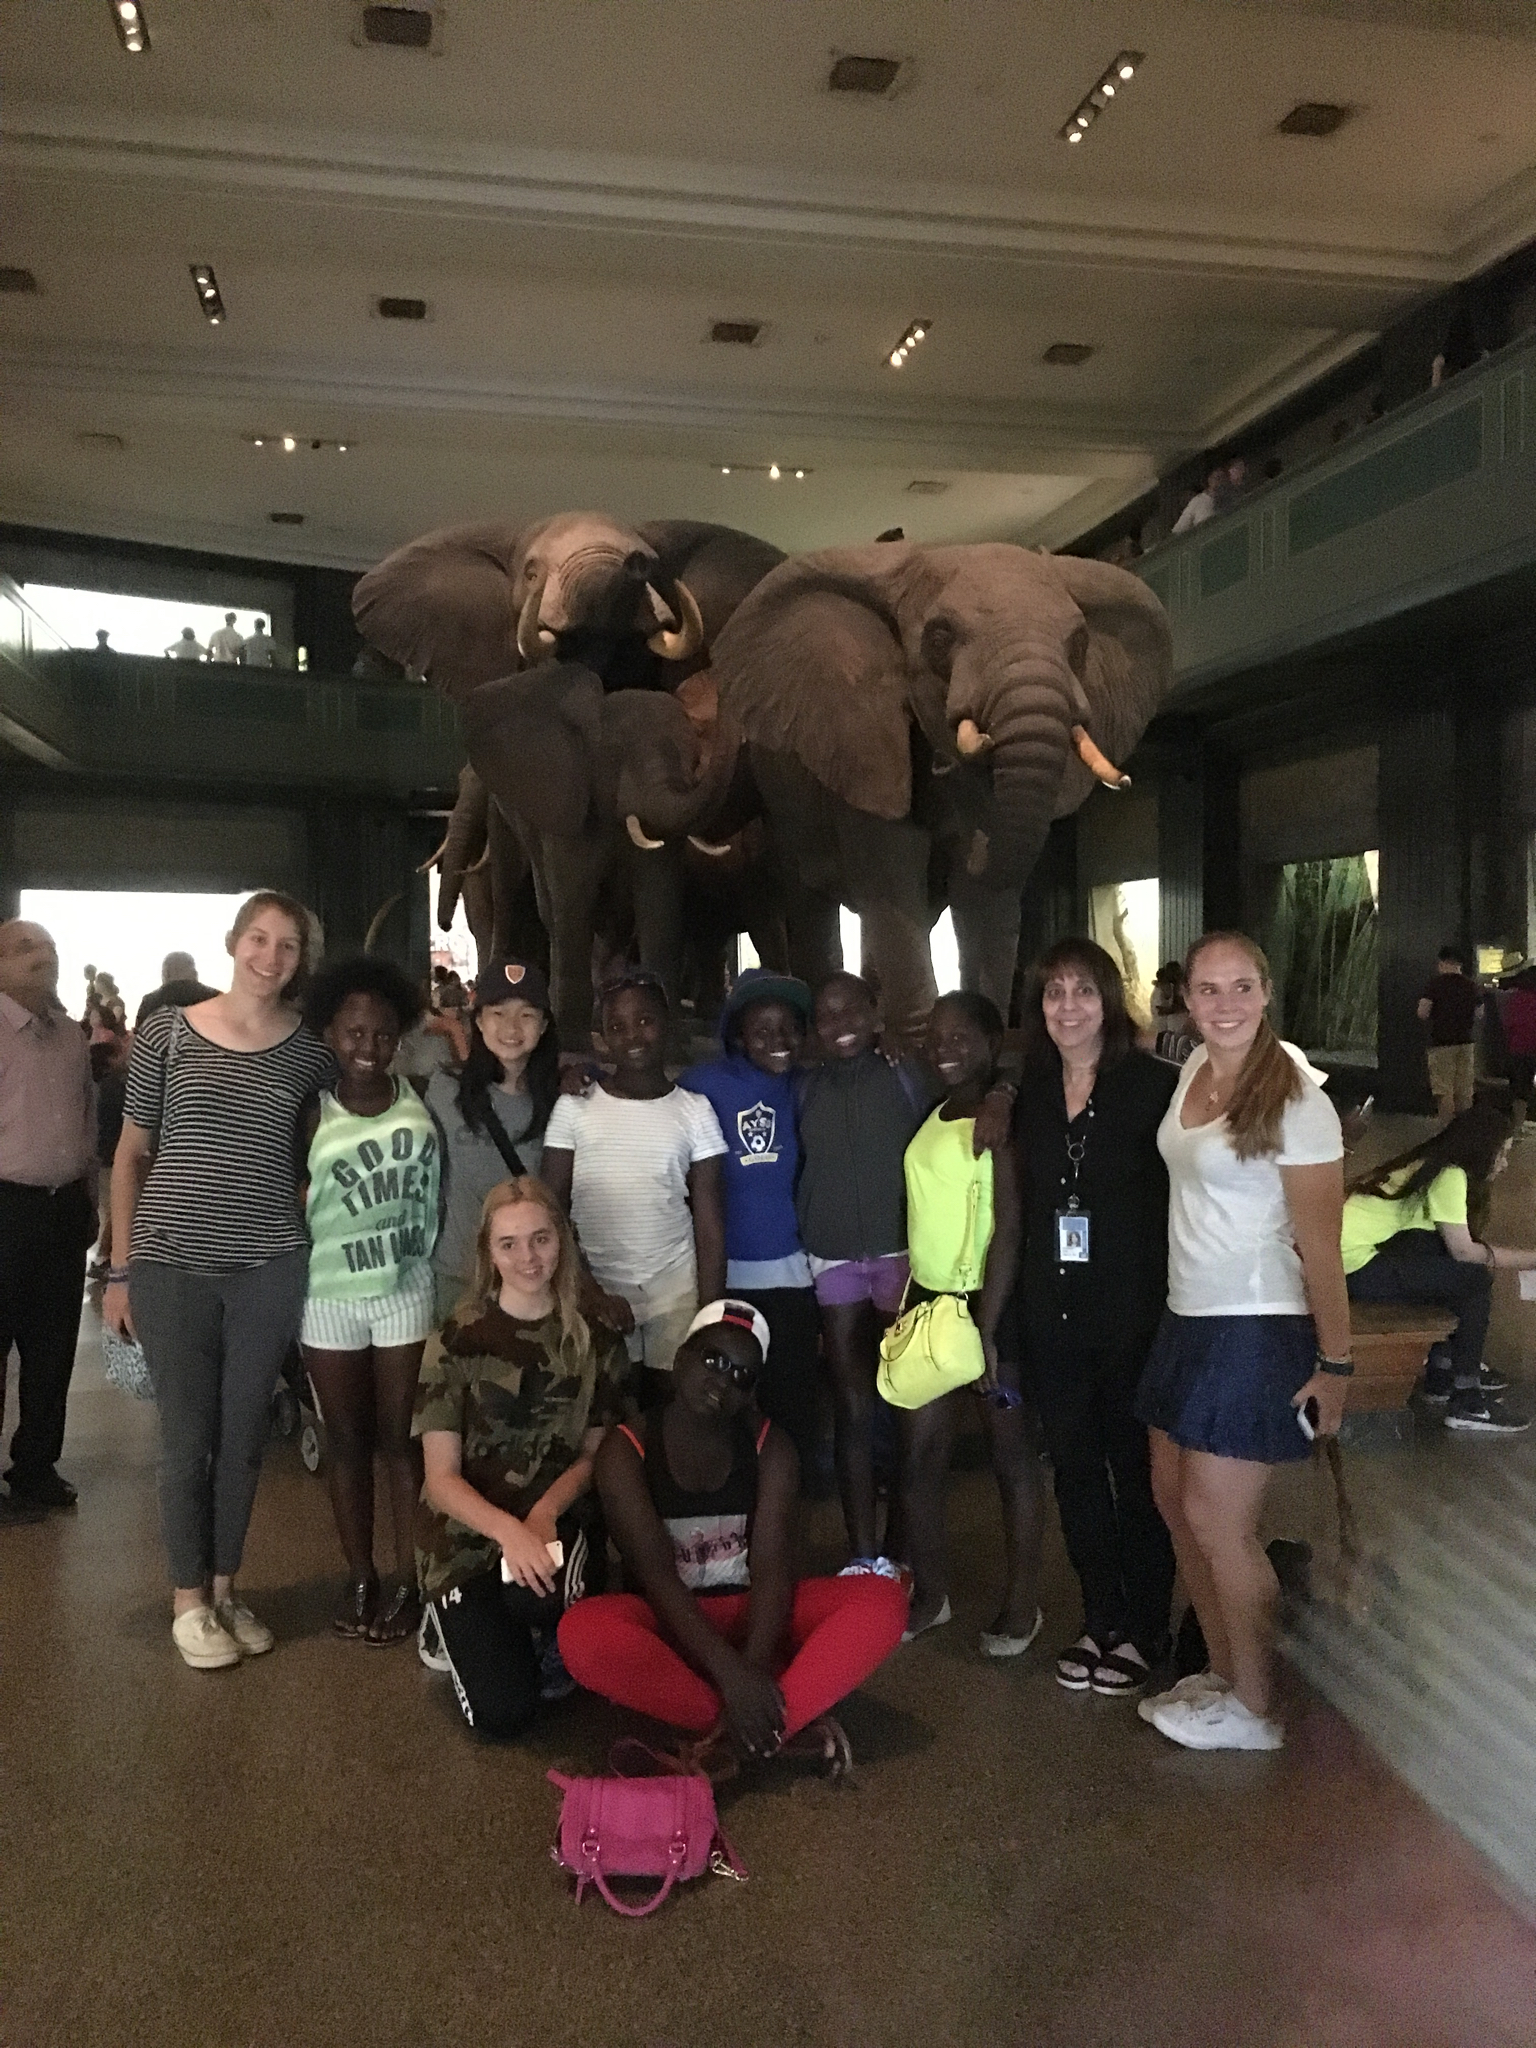 A visit to the Museum of Natural History with students from the Chapin School